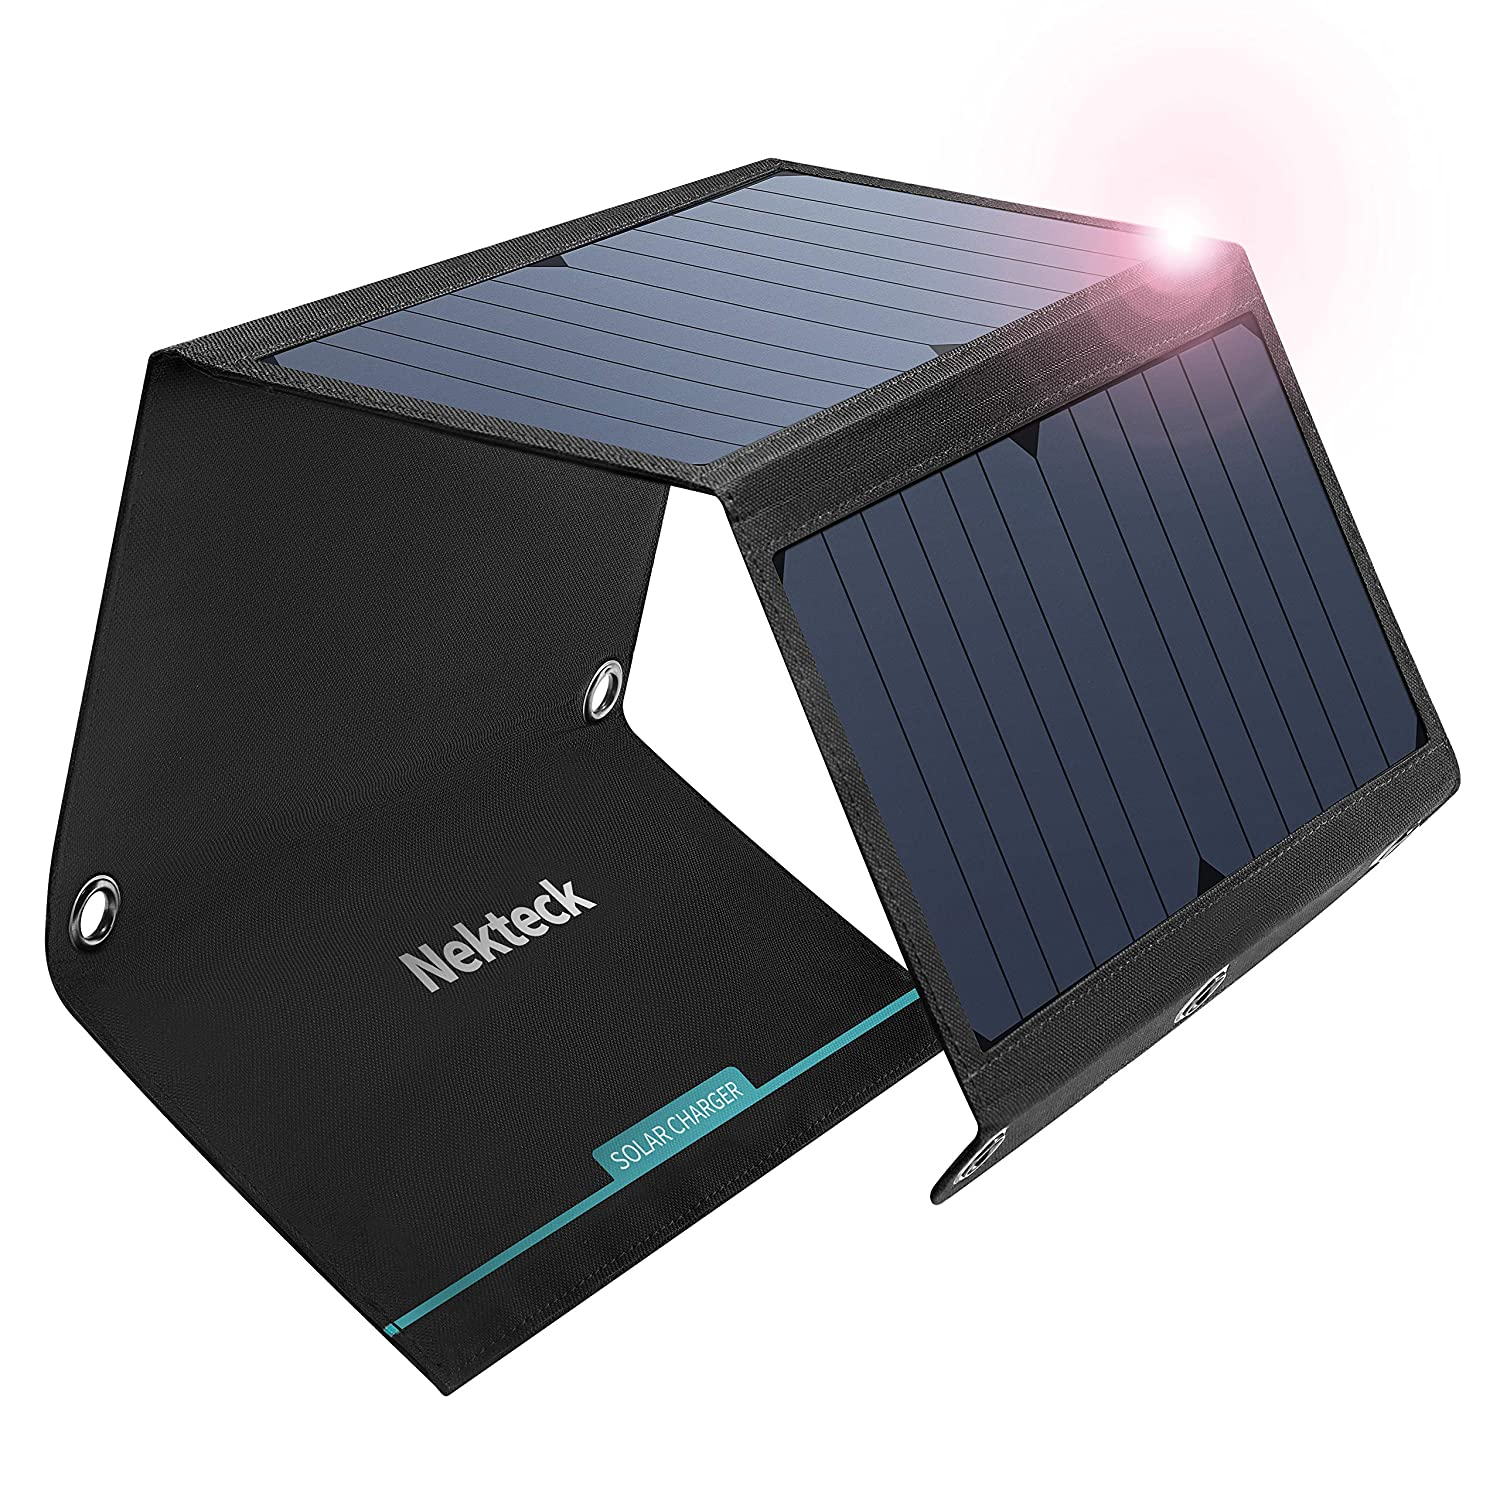 Nekteck 21W Solar Charger(5V/3A Max)